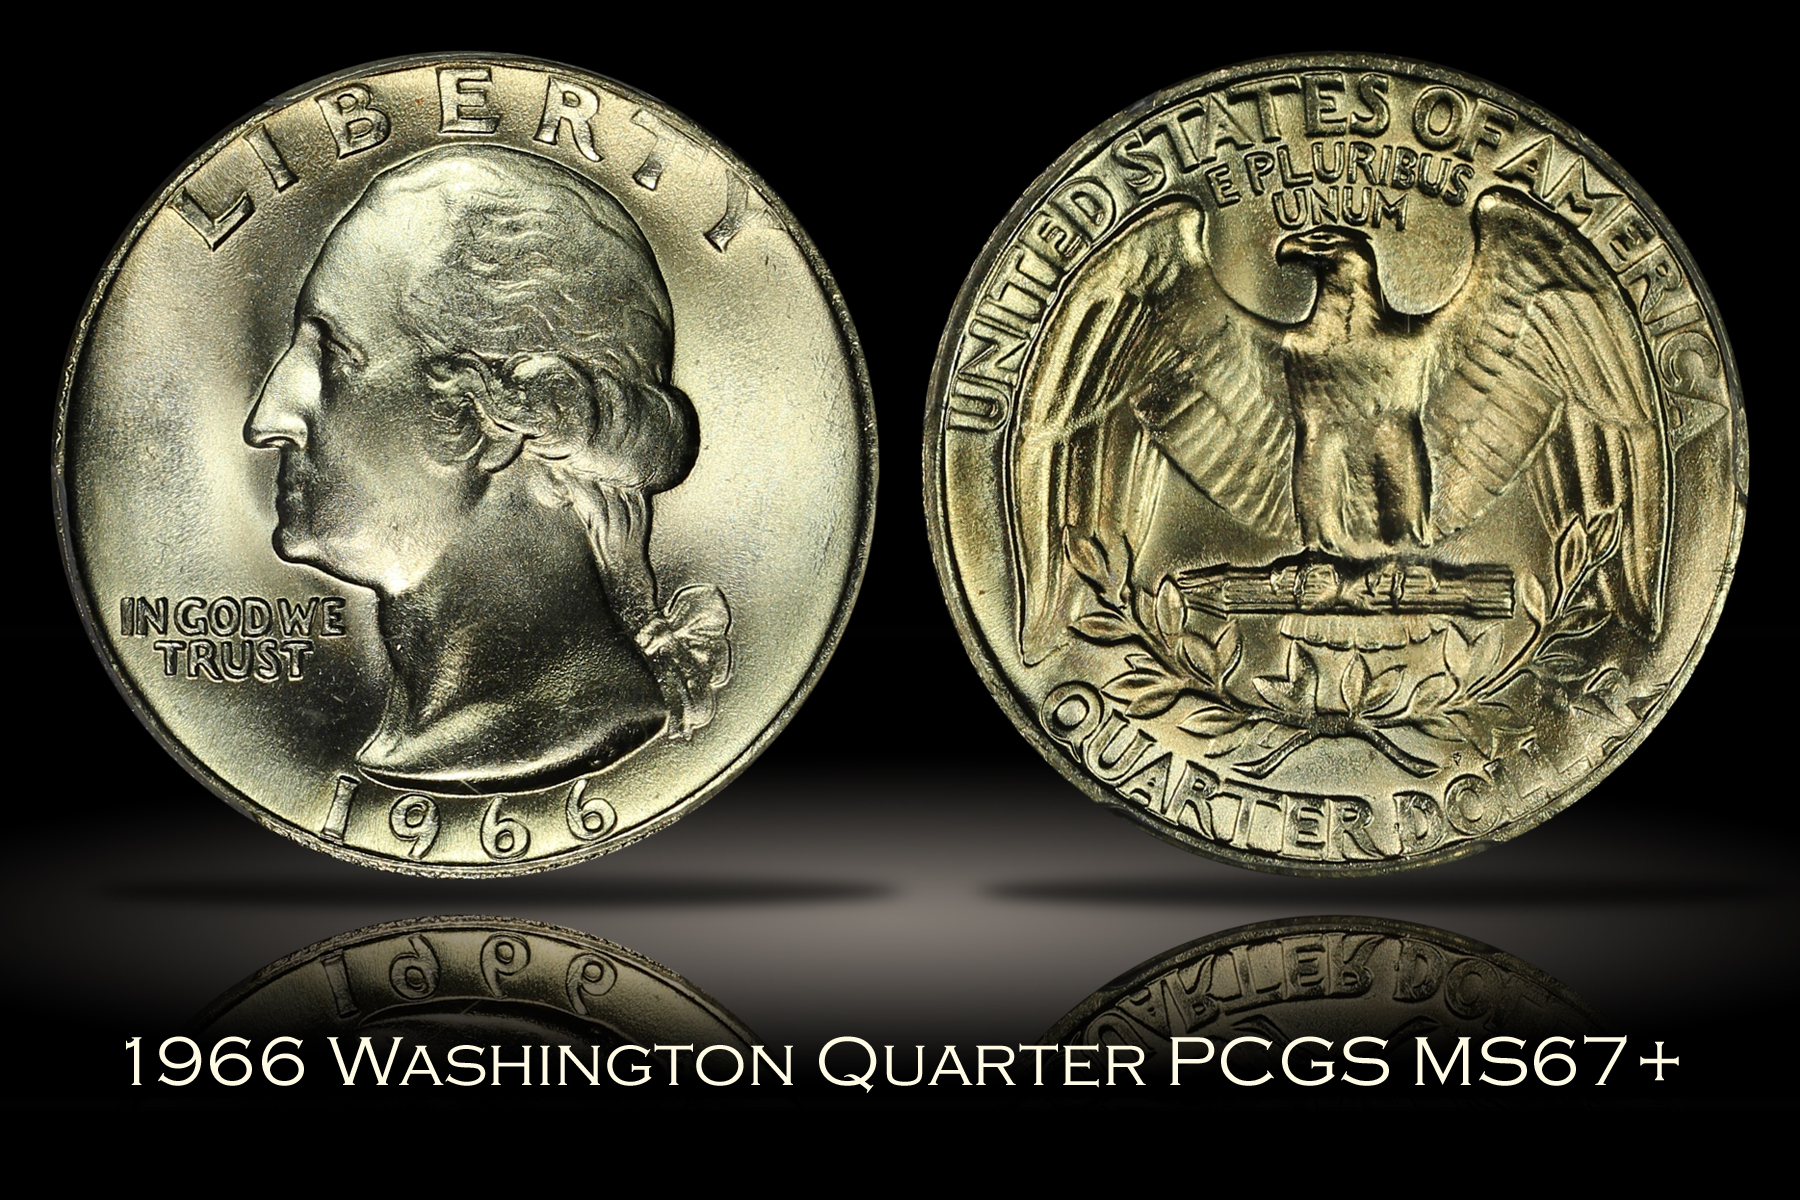 1966 Washington Quarter PCGS MS67+